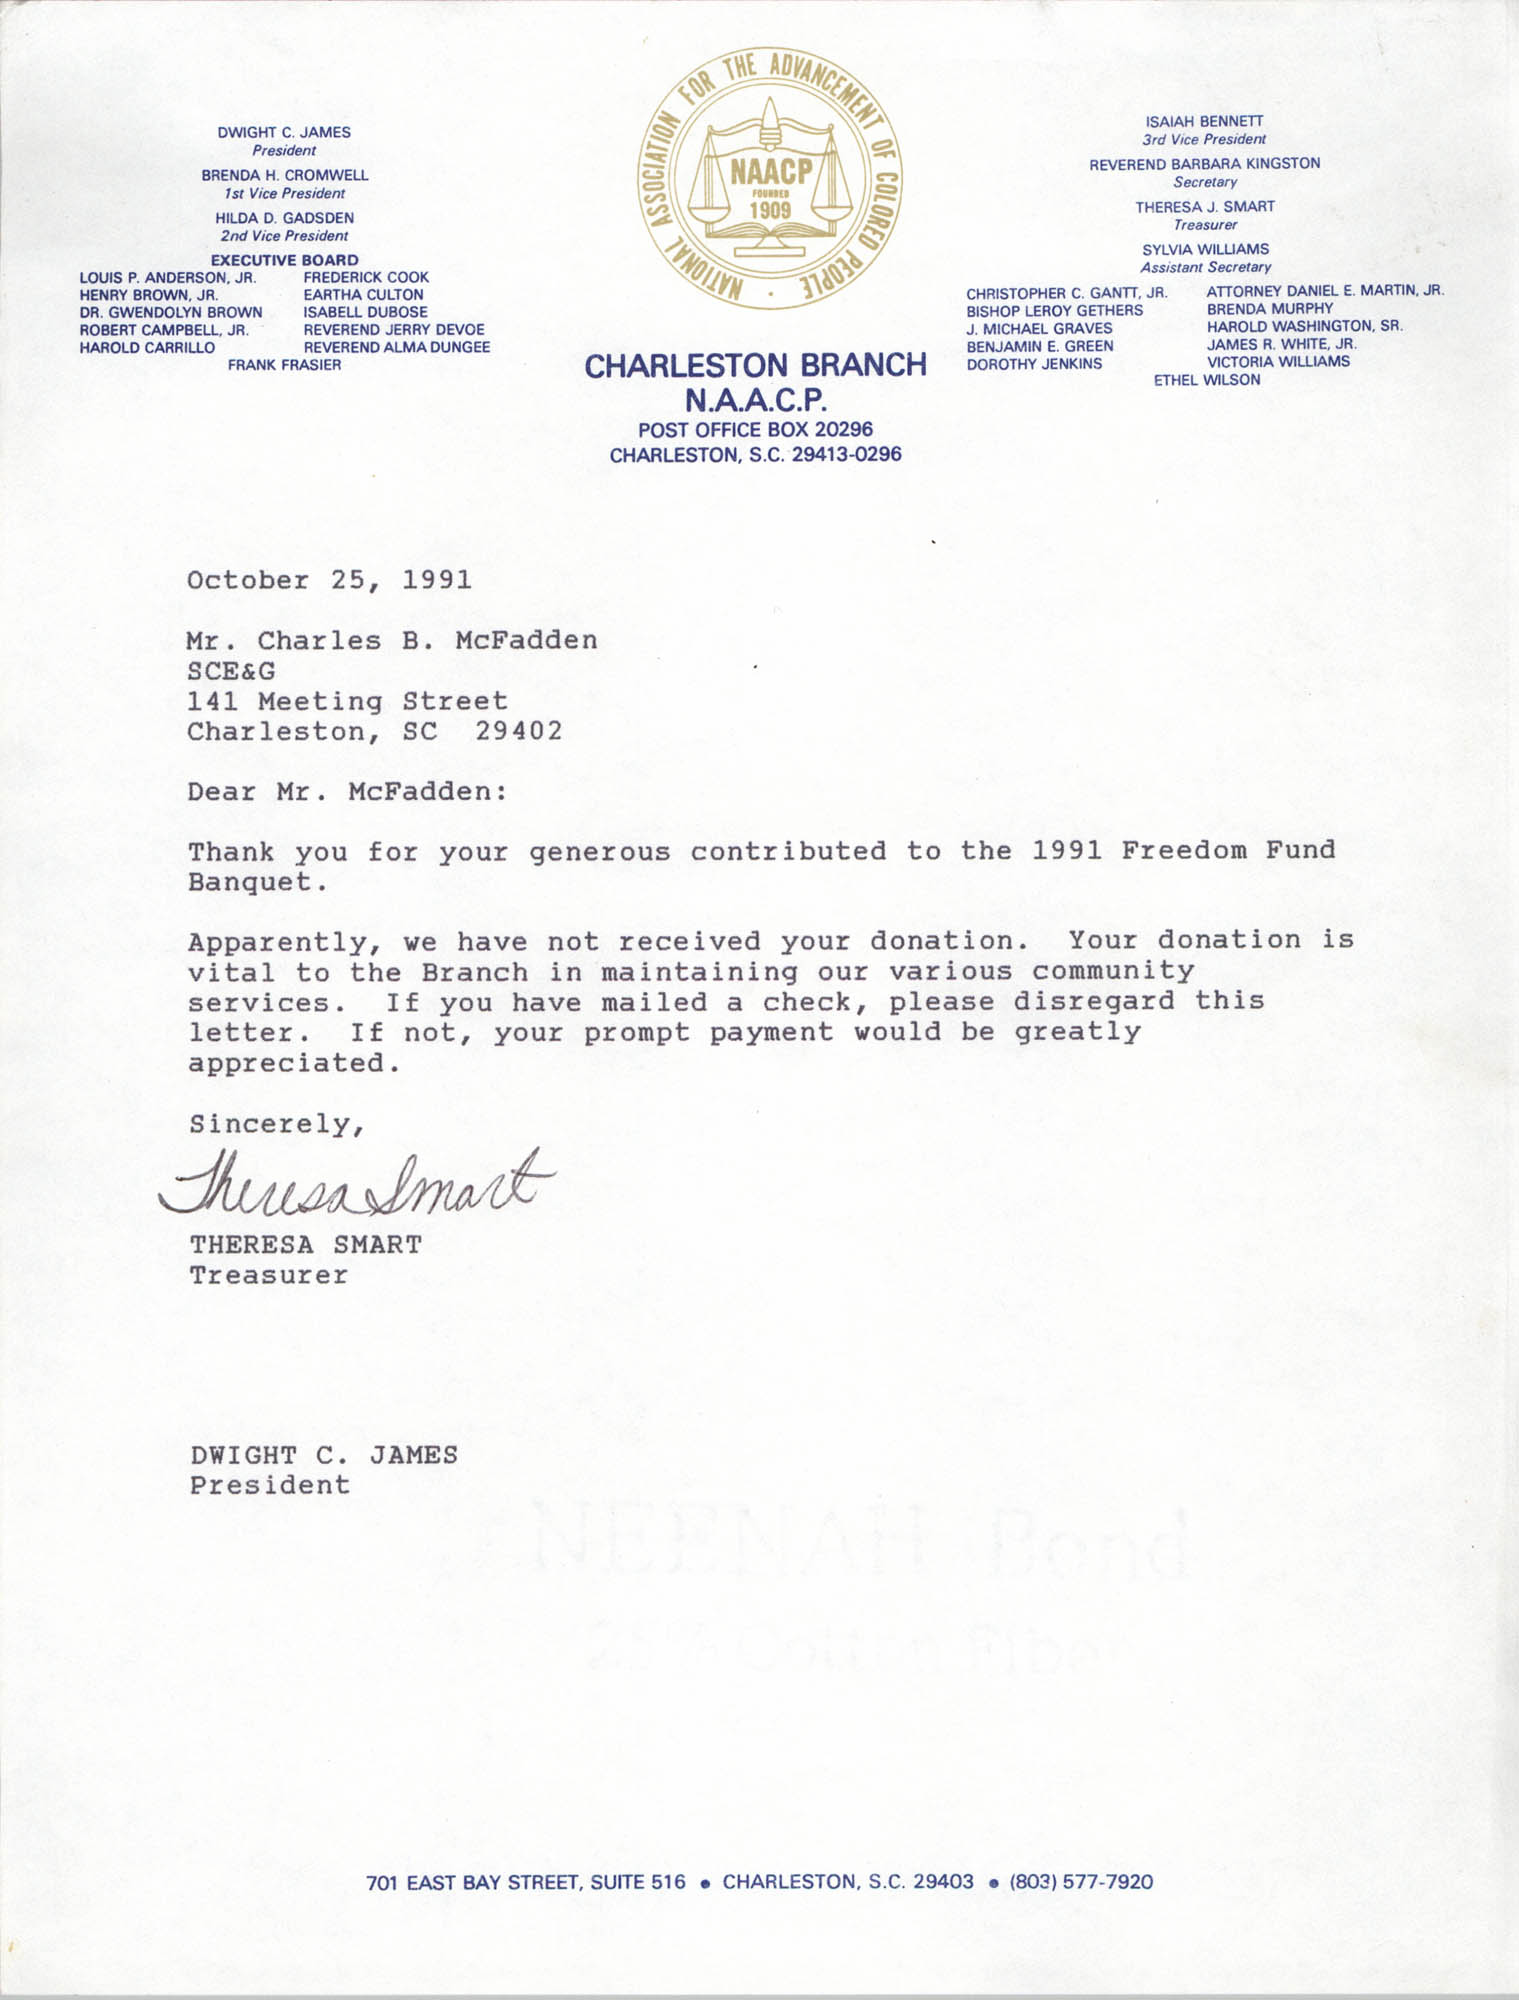 Letter from Theresa Smart and Dwight C. James to Charles B. McFadden, October 25, 1991